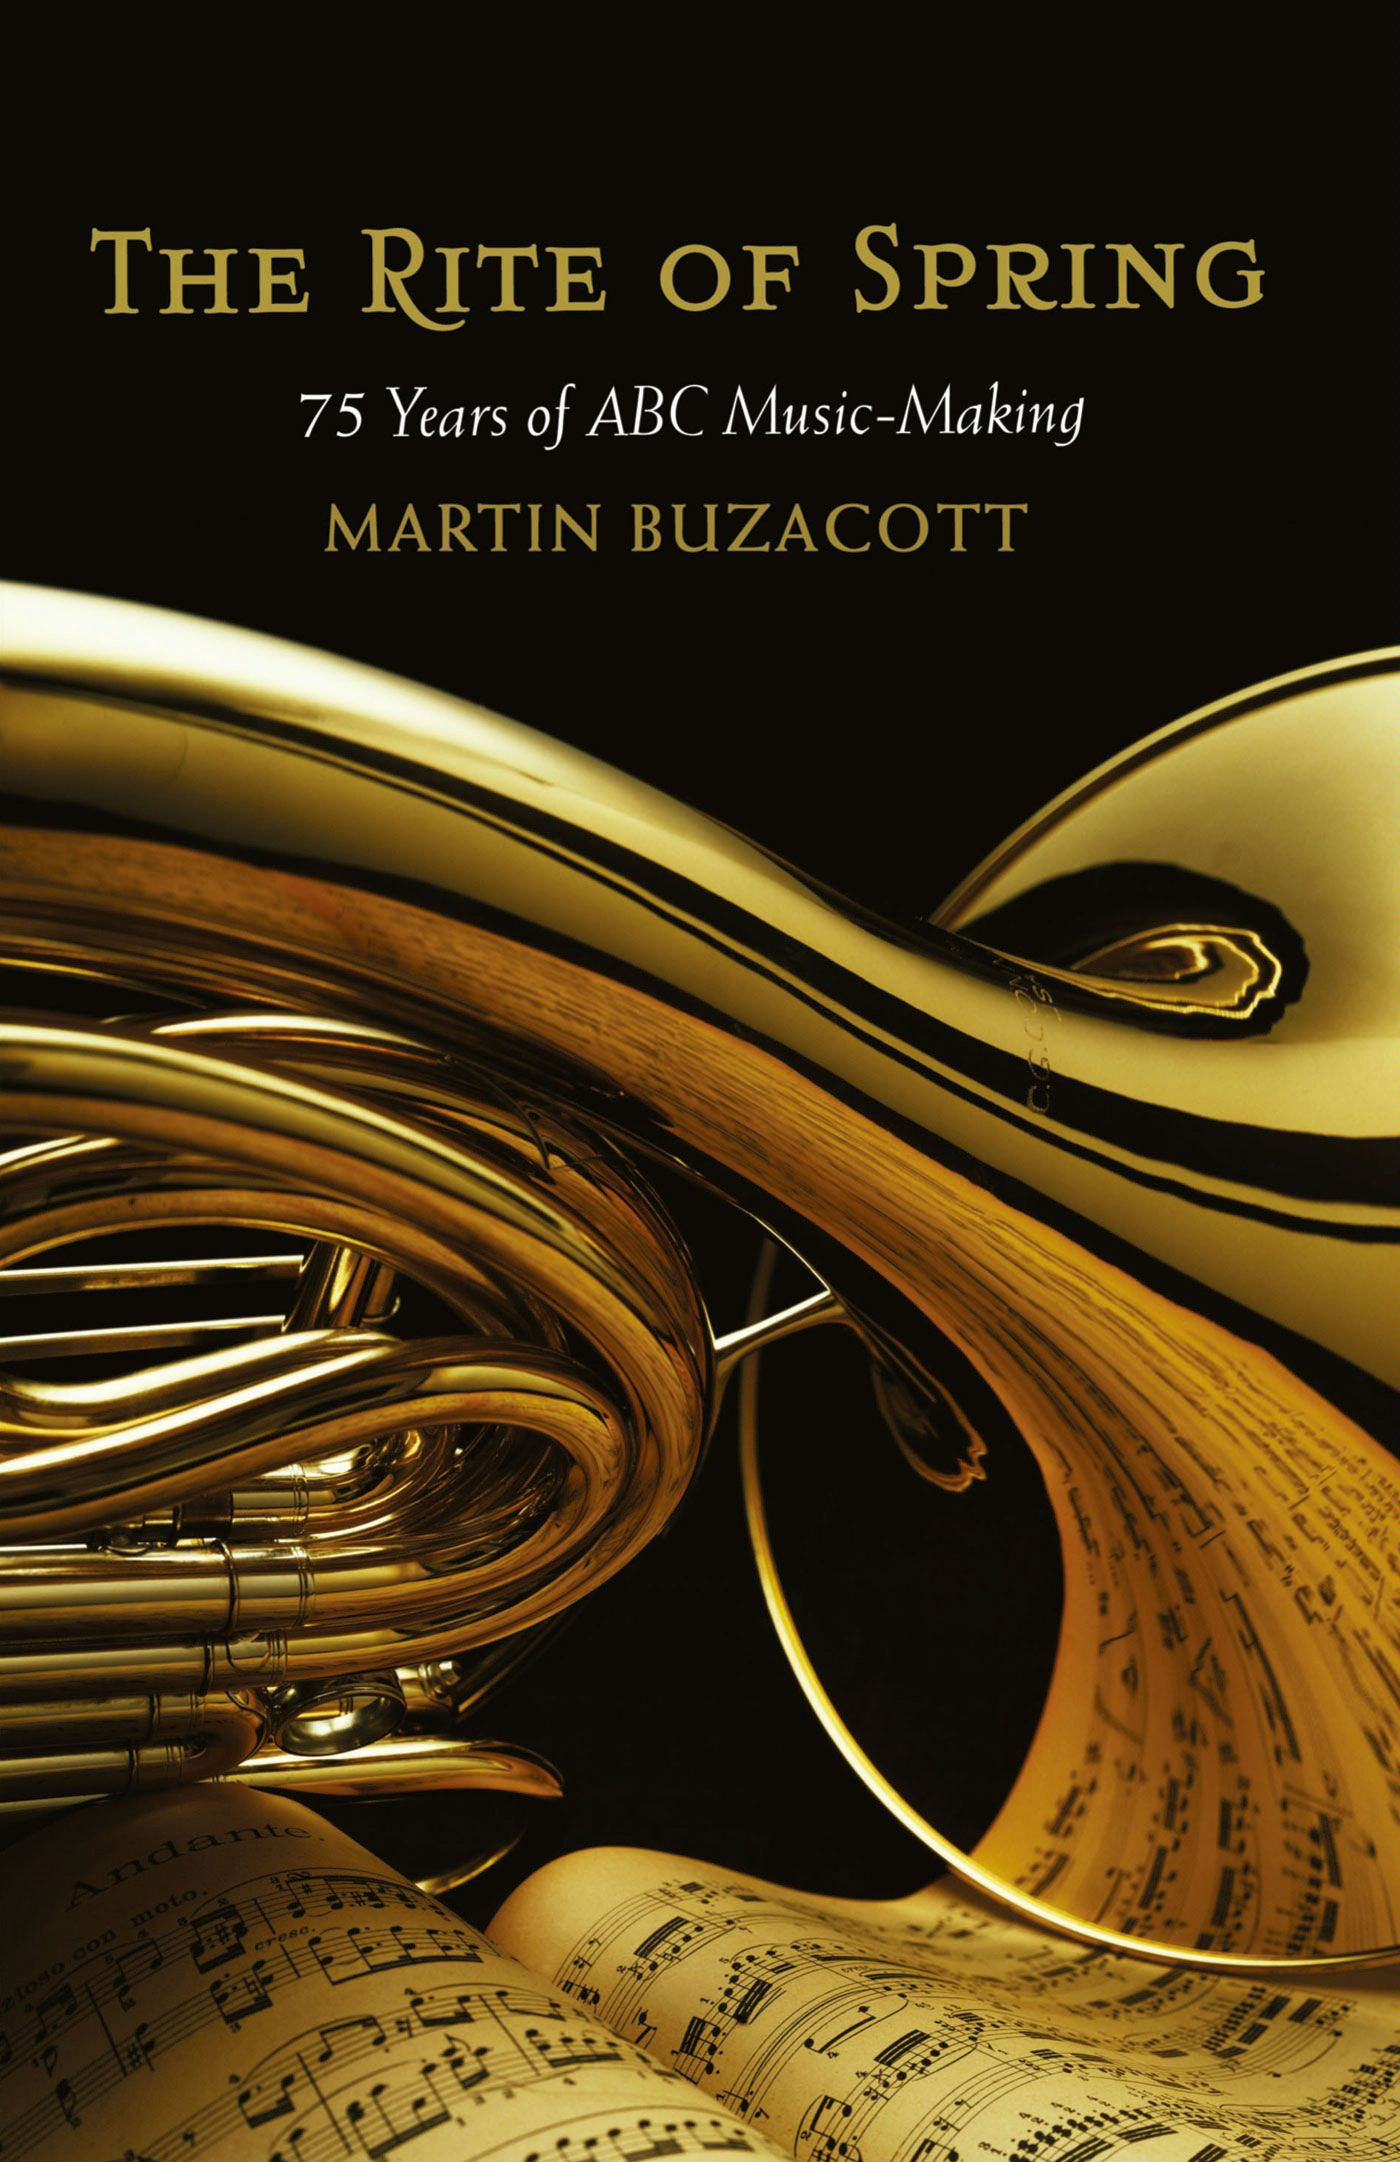 Rite of Spring: 75 Years of ABC Music-Making